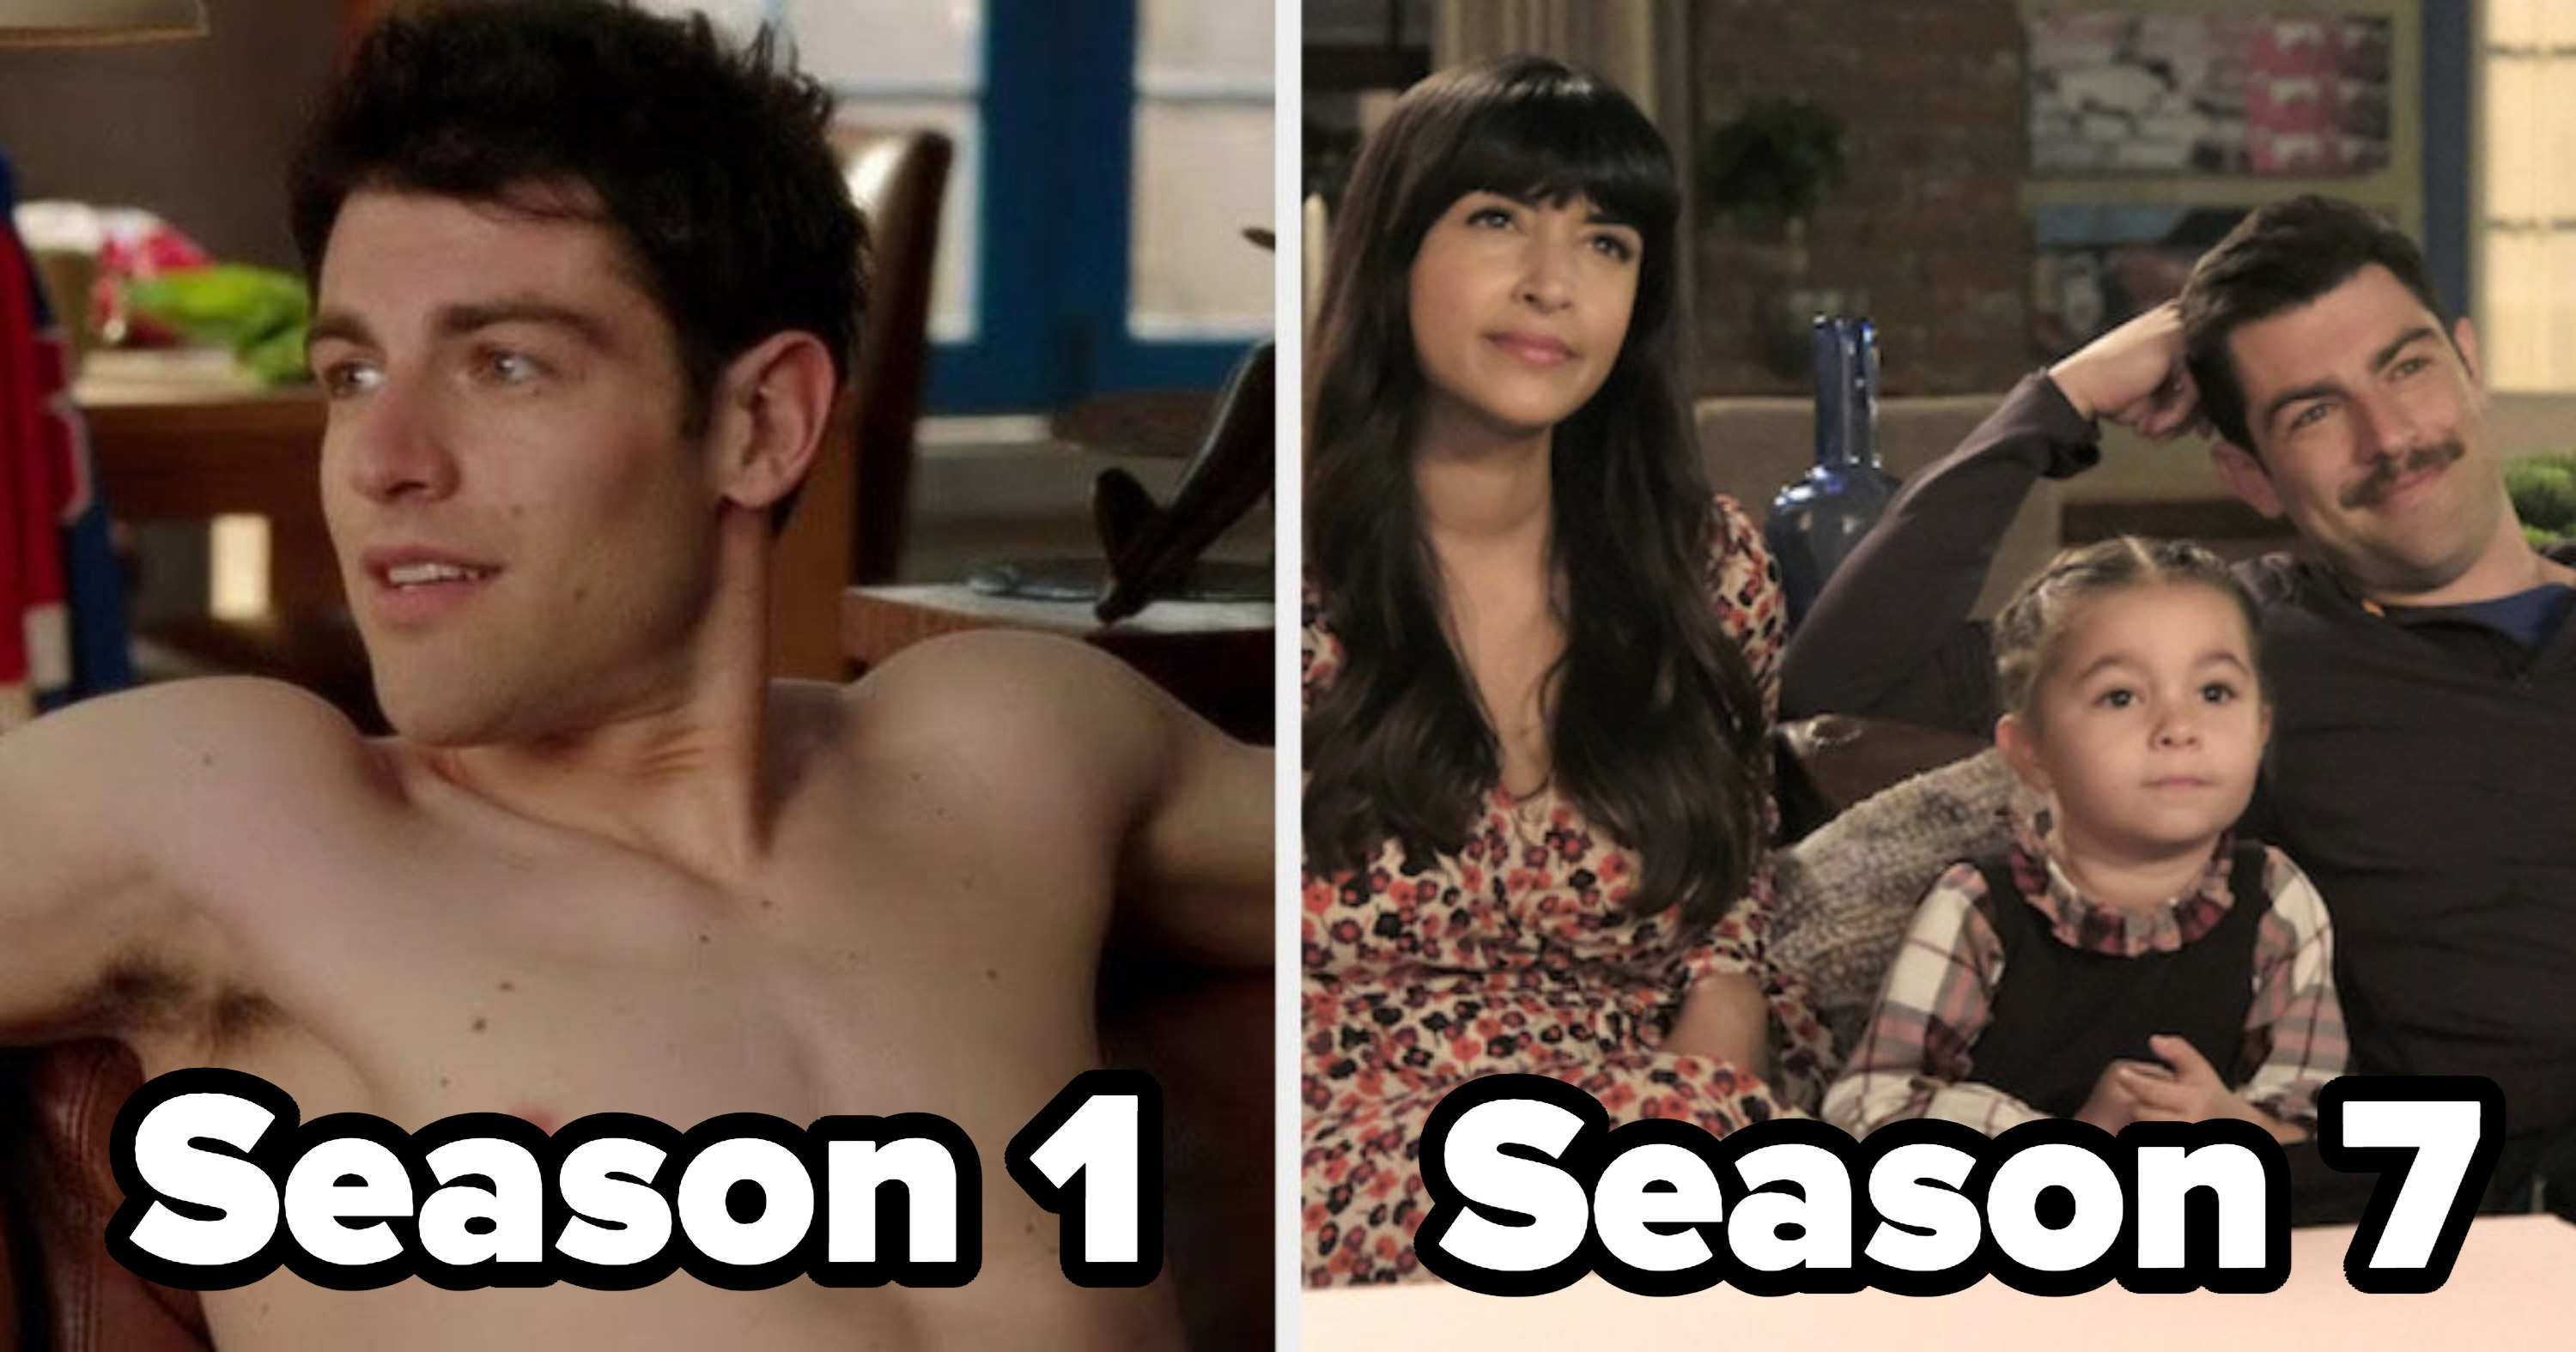 Schmidt lounges shirtless on a couch in Season 1/ In Season 7 he sits on the same couch with his wife and daughter.